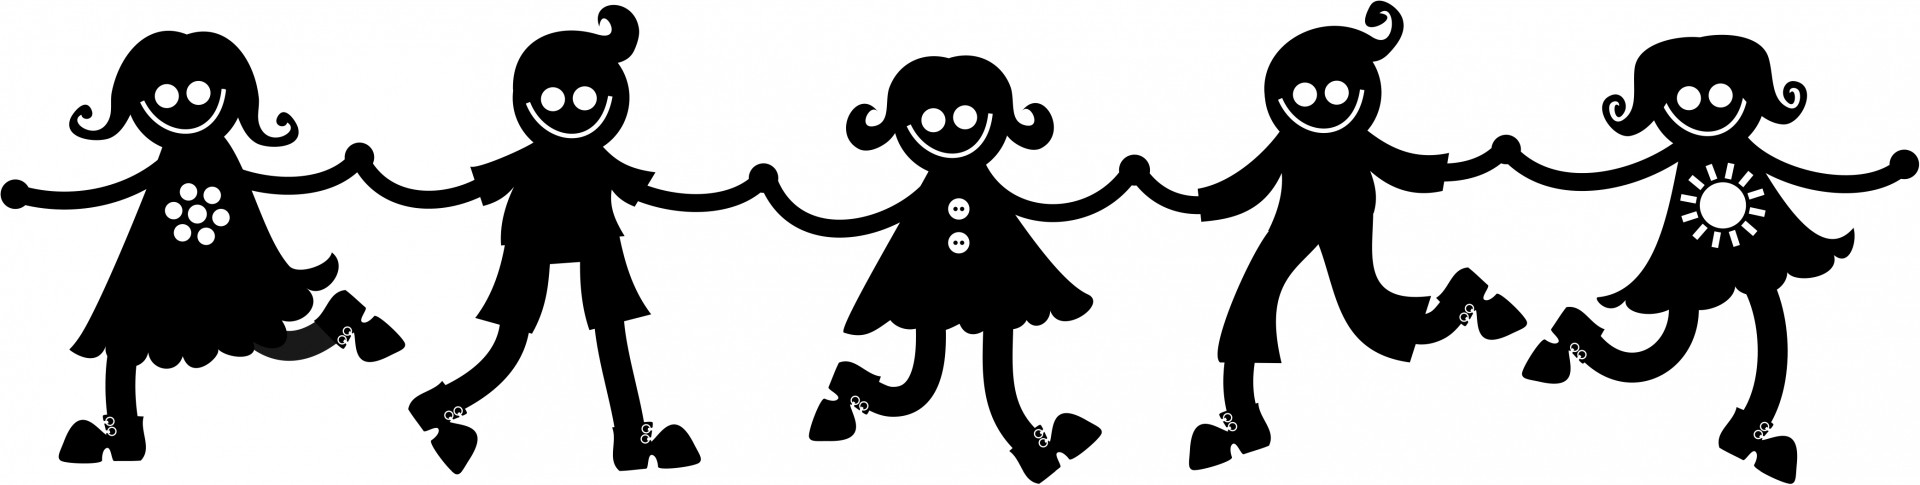 Kids clipart silhouette. Holding hands free stock